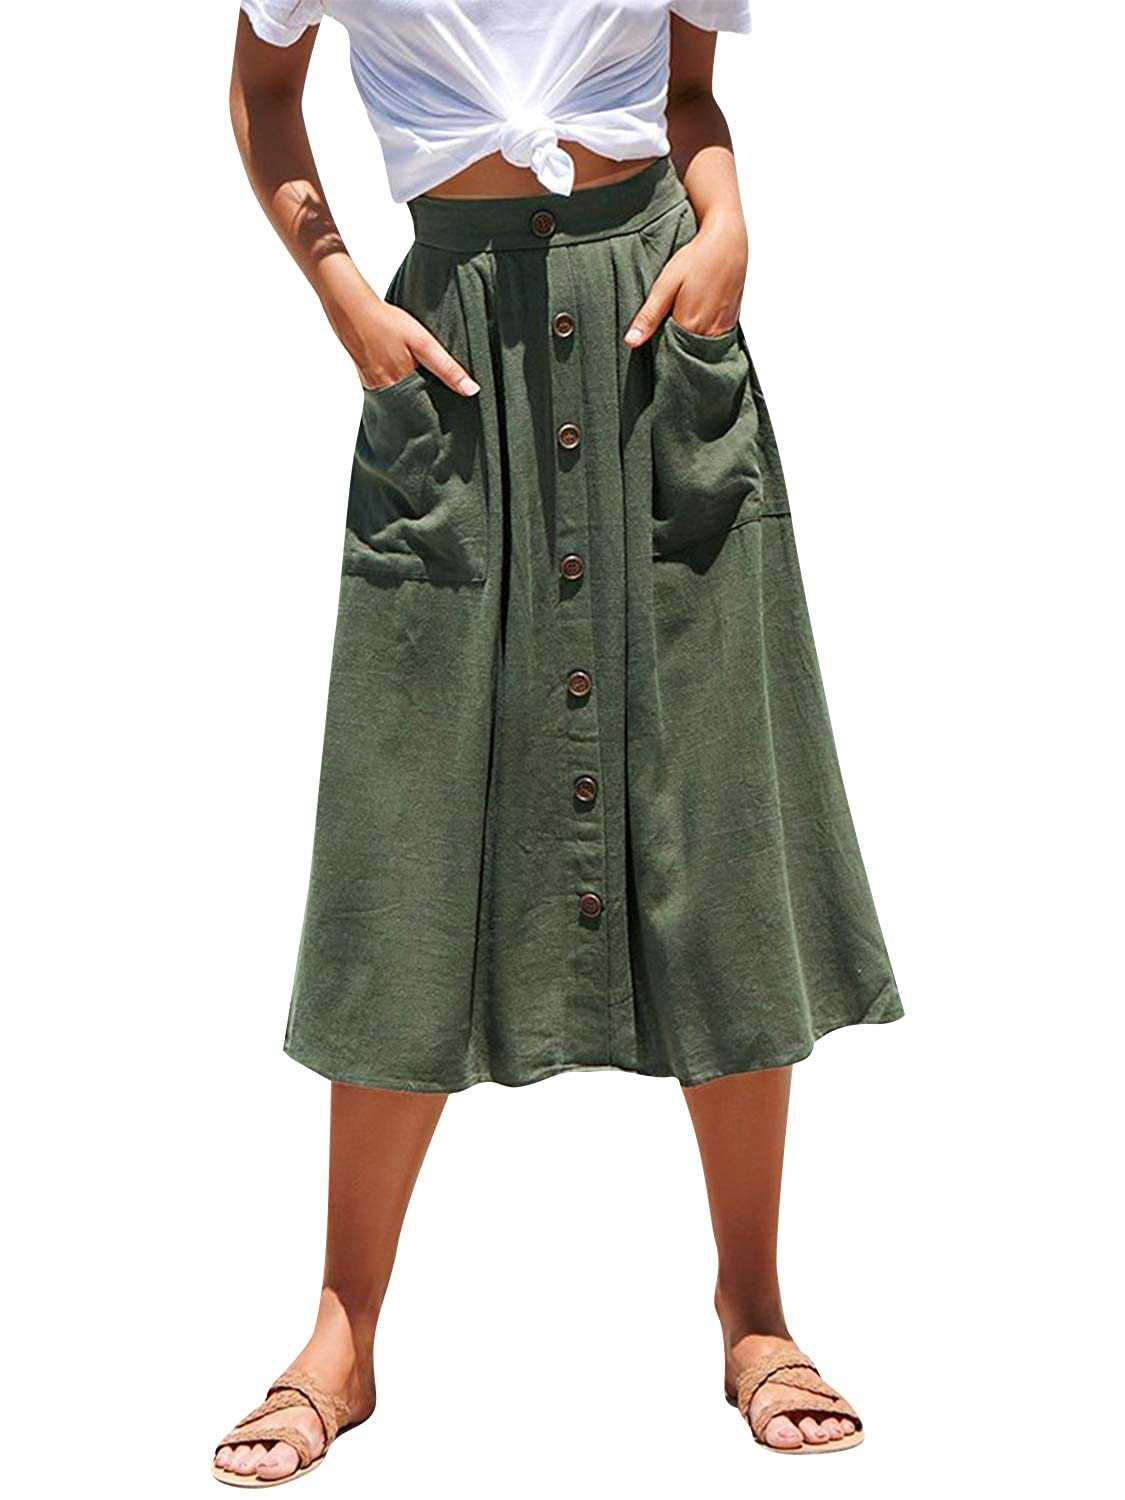 e7c8a86b21 Miessial Women's Cotton Linen Solid Casual A-line Midi Skirts Button Down  Long Skirts with Pocket at Amazon Women's Clothing store: